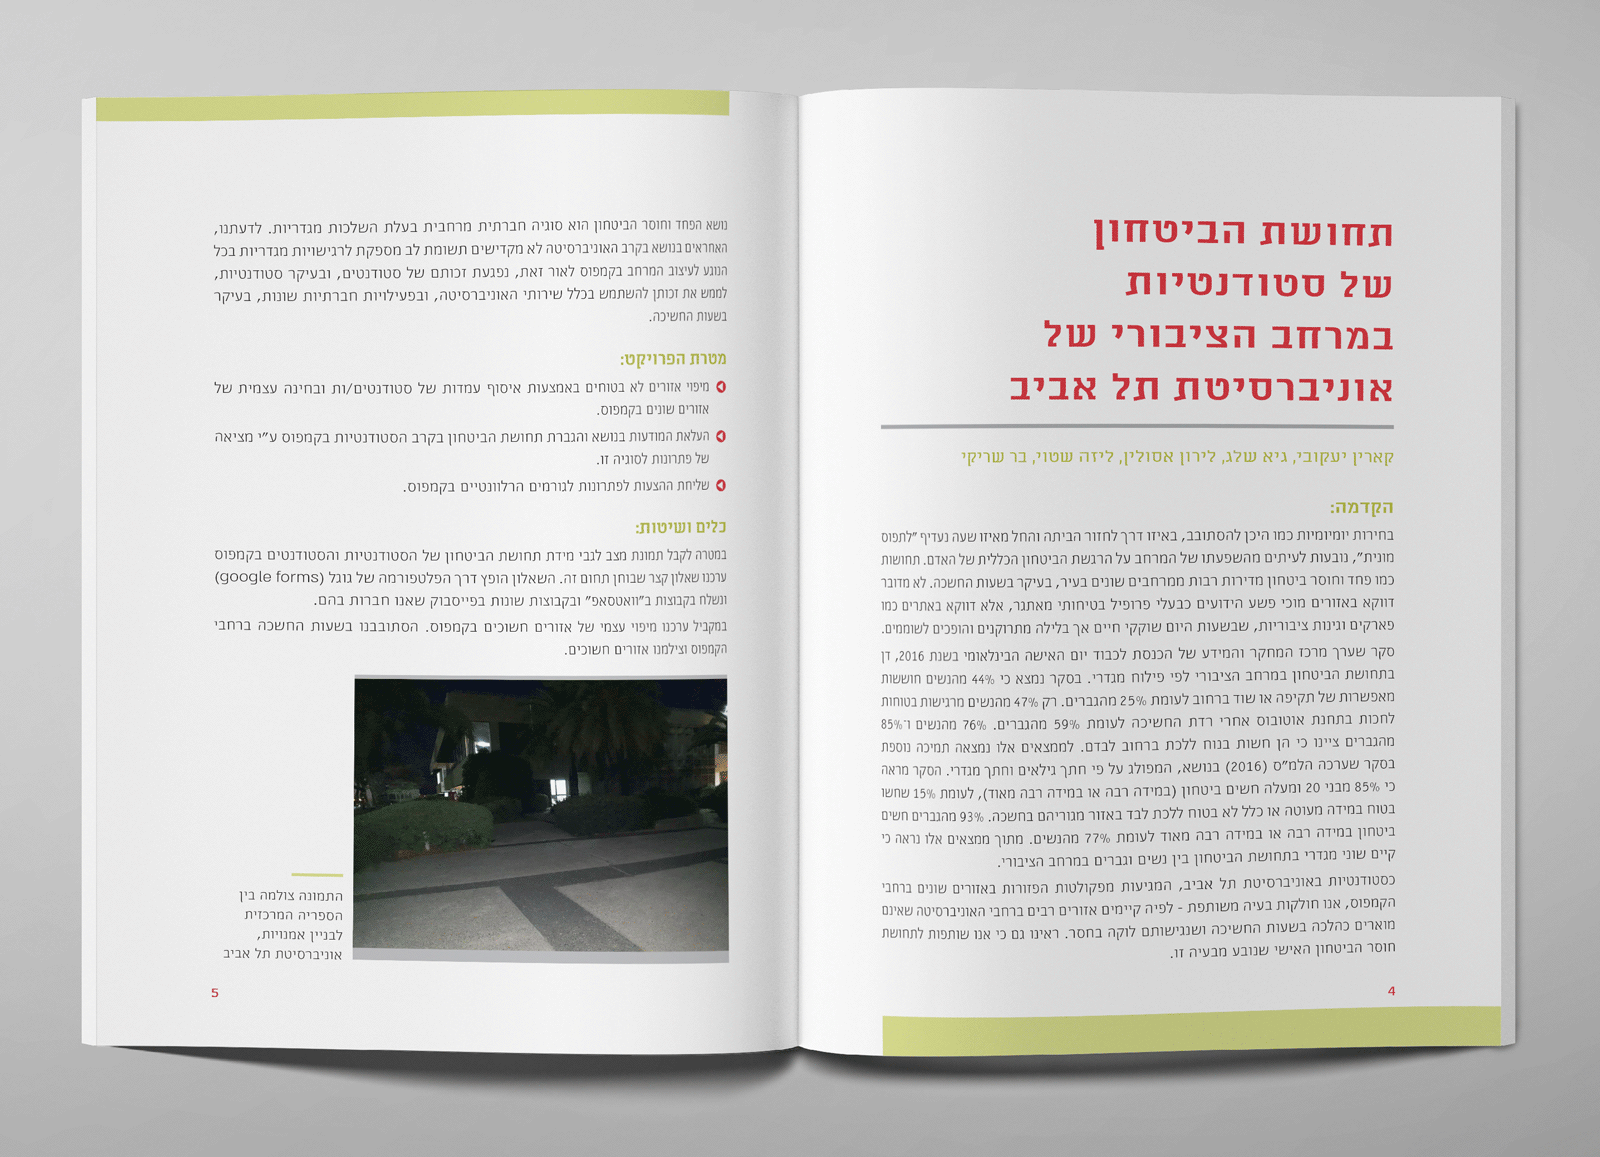 http://bigeyes.co.il/wp-content/uploads/2019/07/adva-gender18-2.png